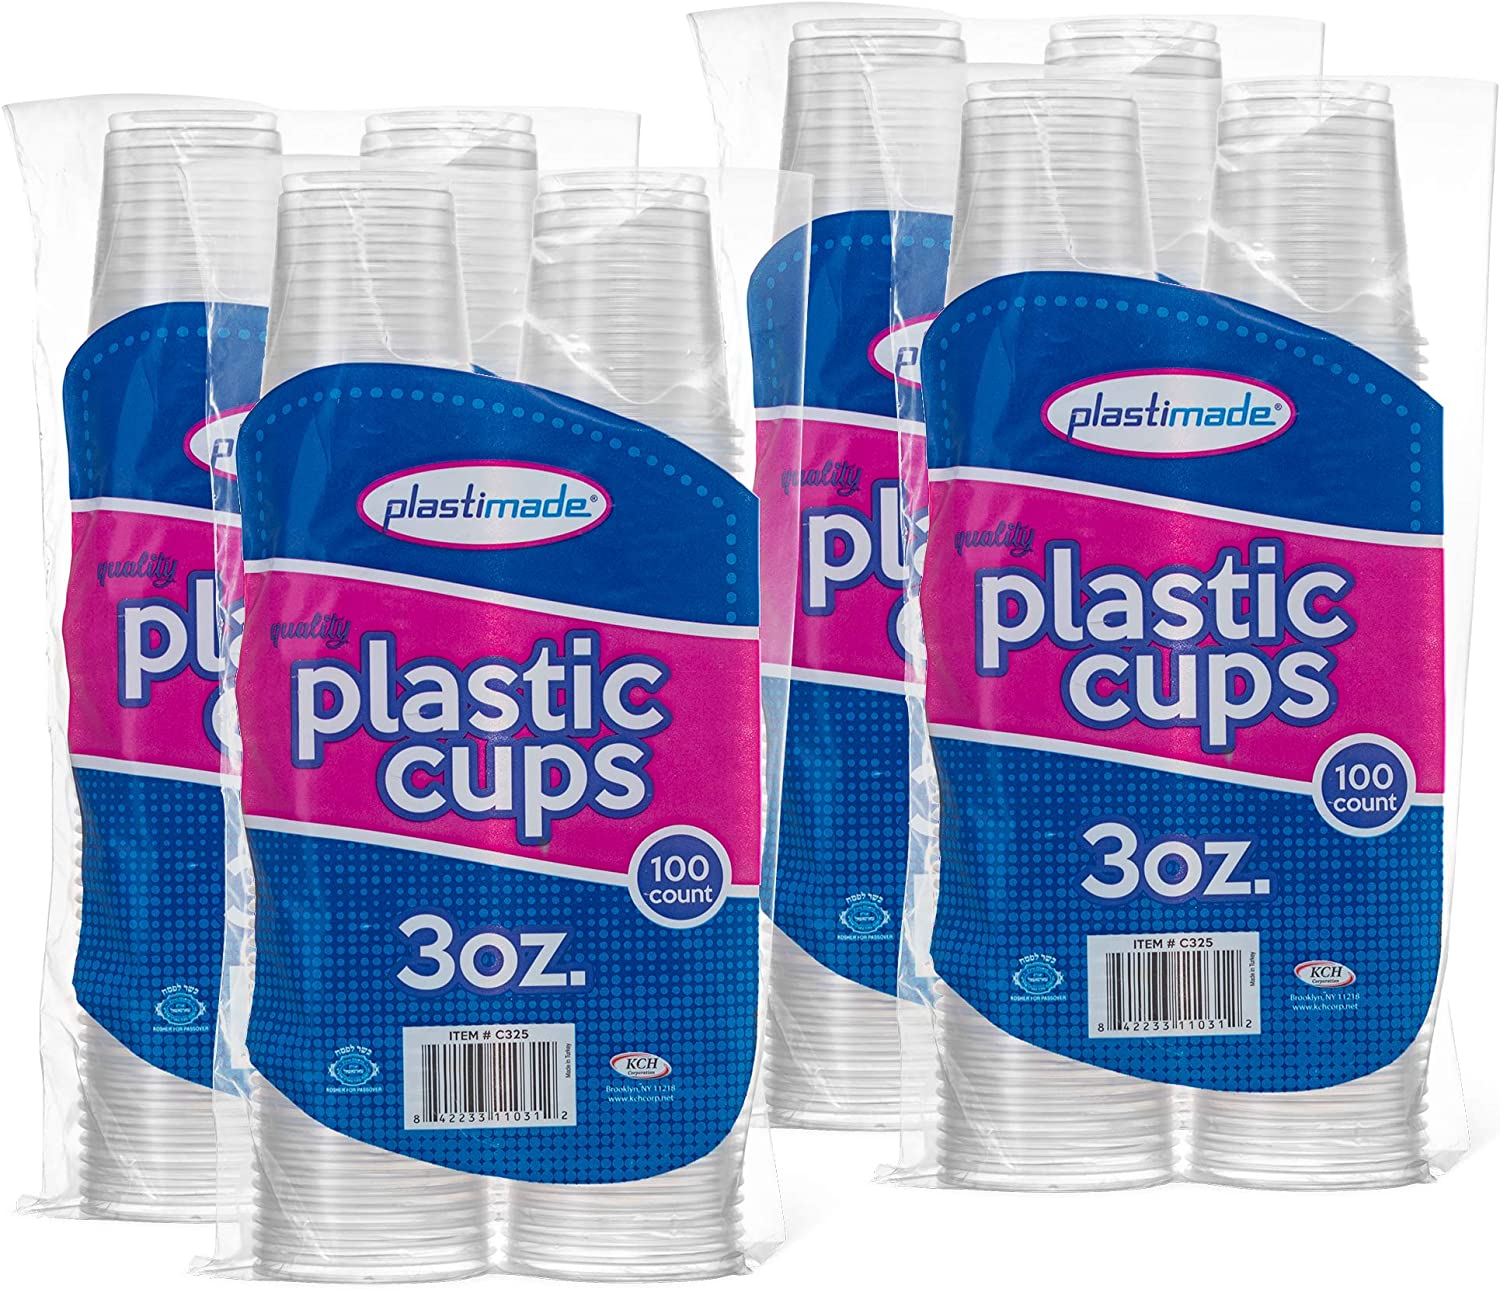 [400 Count] PlastiMade 3 Oz Clear Plastic Disposable Reusable Cups For Drinking, Bathroom, Rinsing, Test, Medication, Party, Home, Office, Water, Juice, Kids. 4 Pack